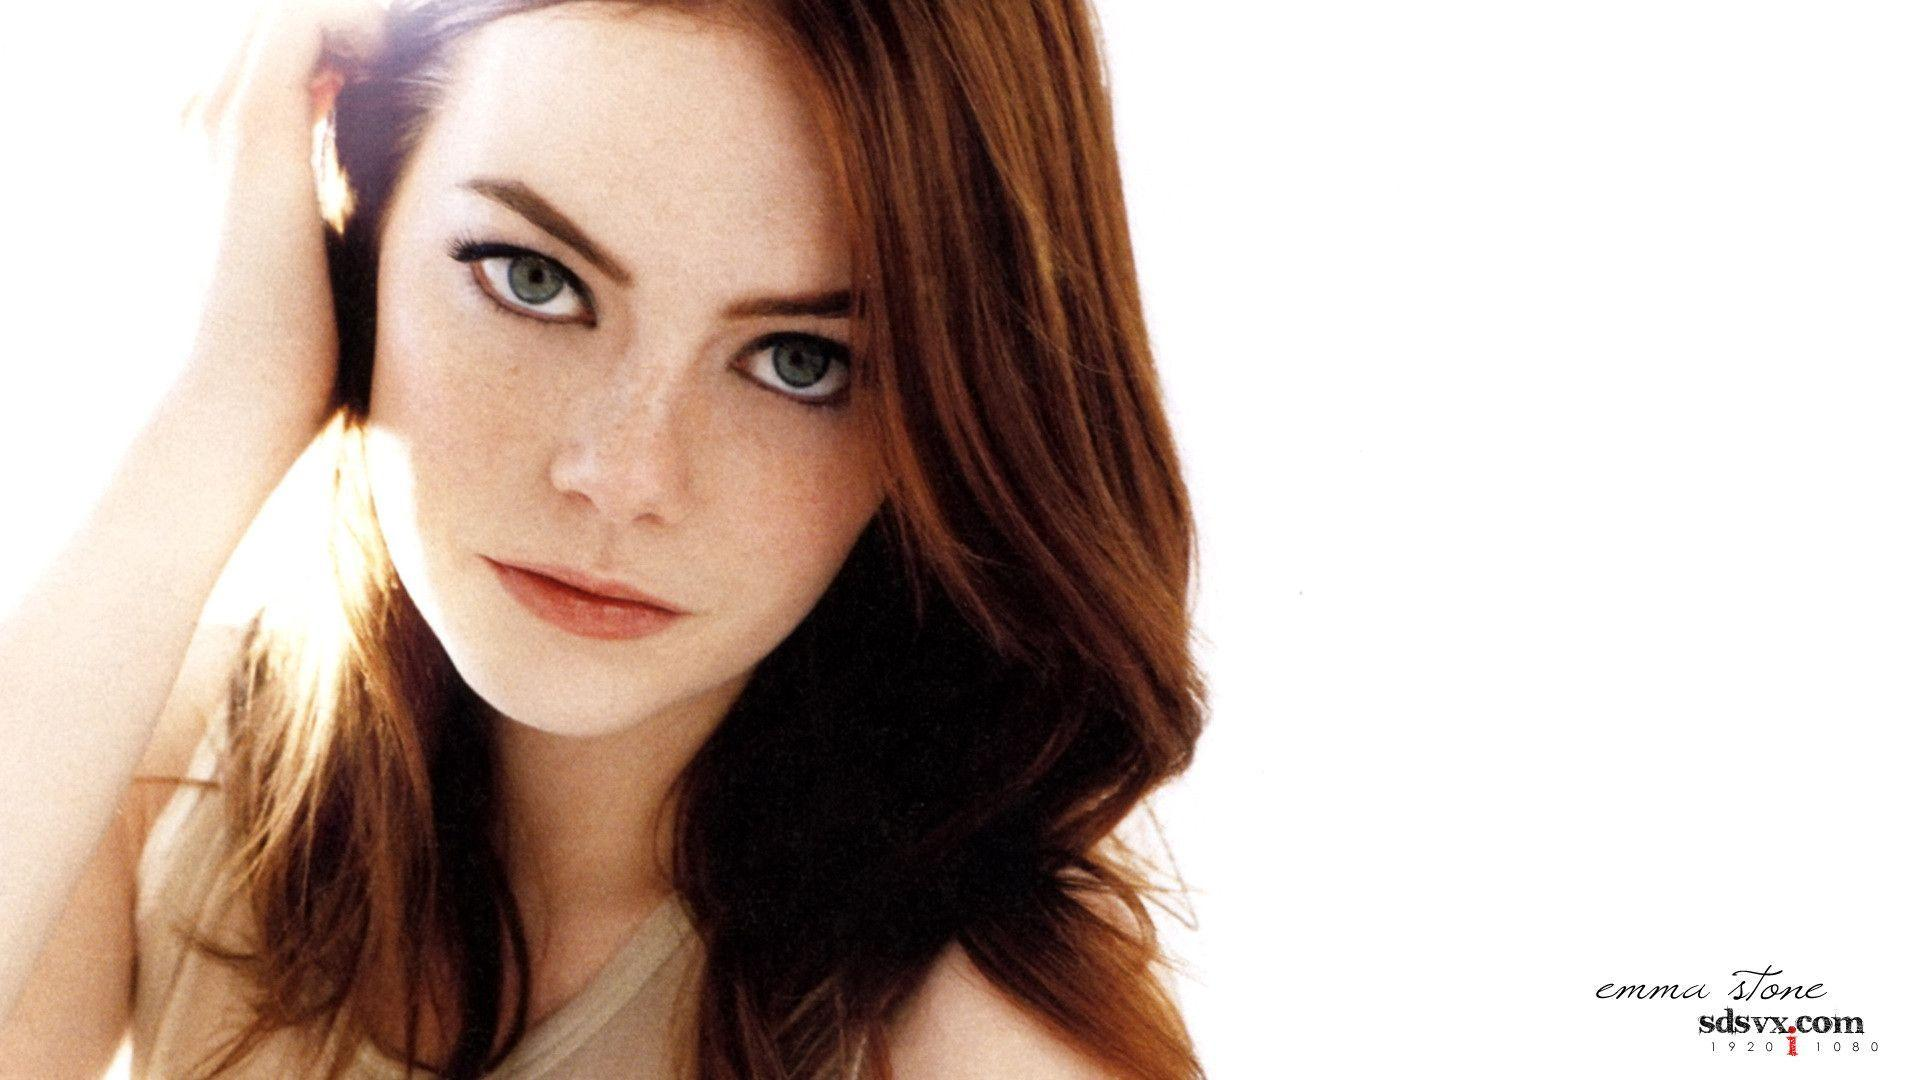 37 Emma Stone Wallpapers | Emma Stone Backgrounds